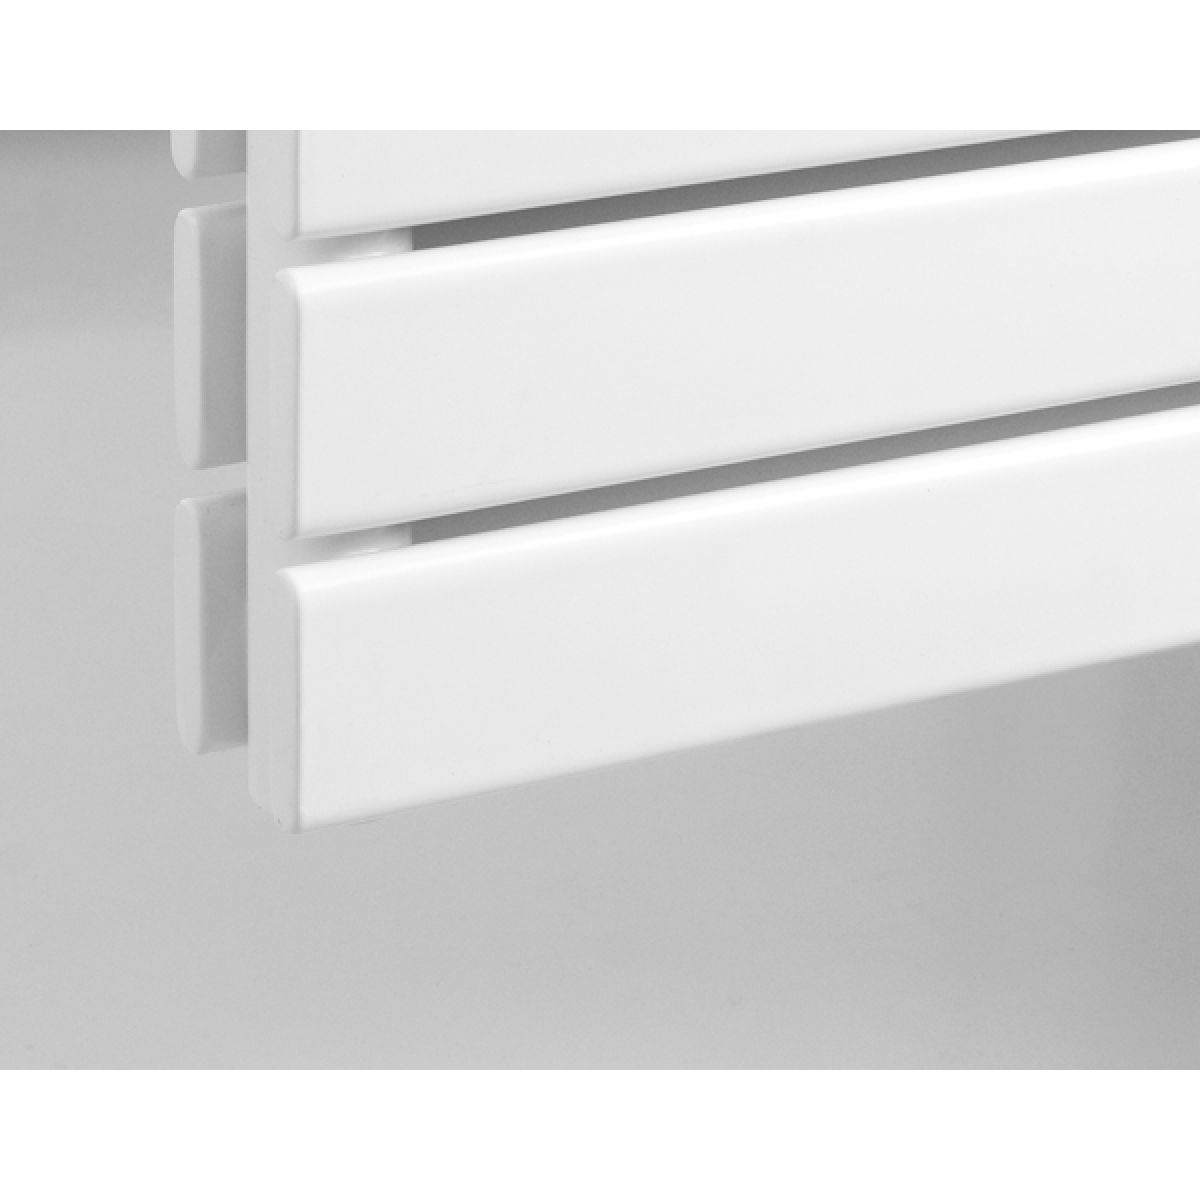 Rione Double White Electric Horizontal Radiator 550 x 1000mm Detail 1